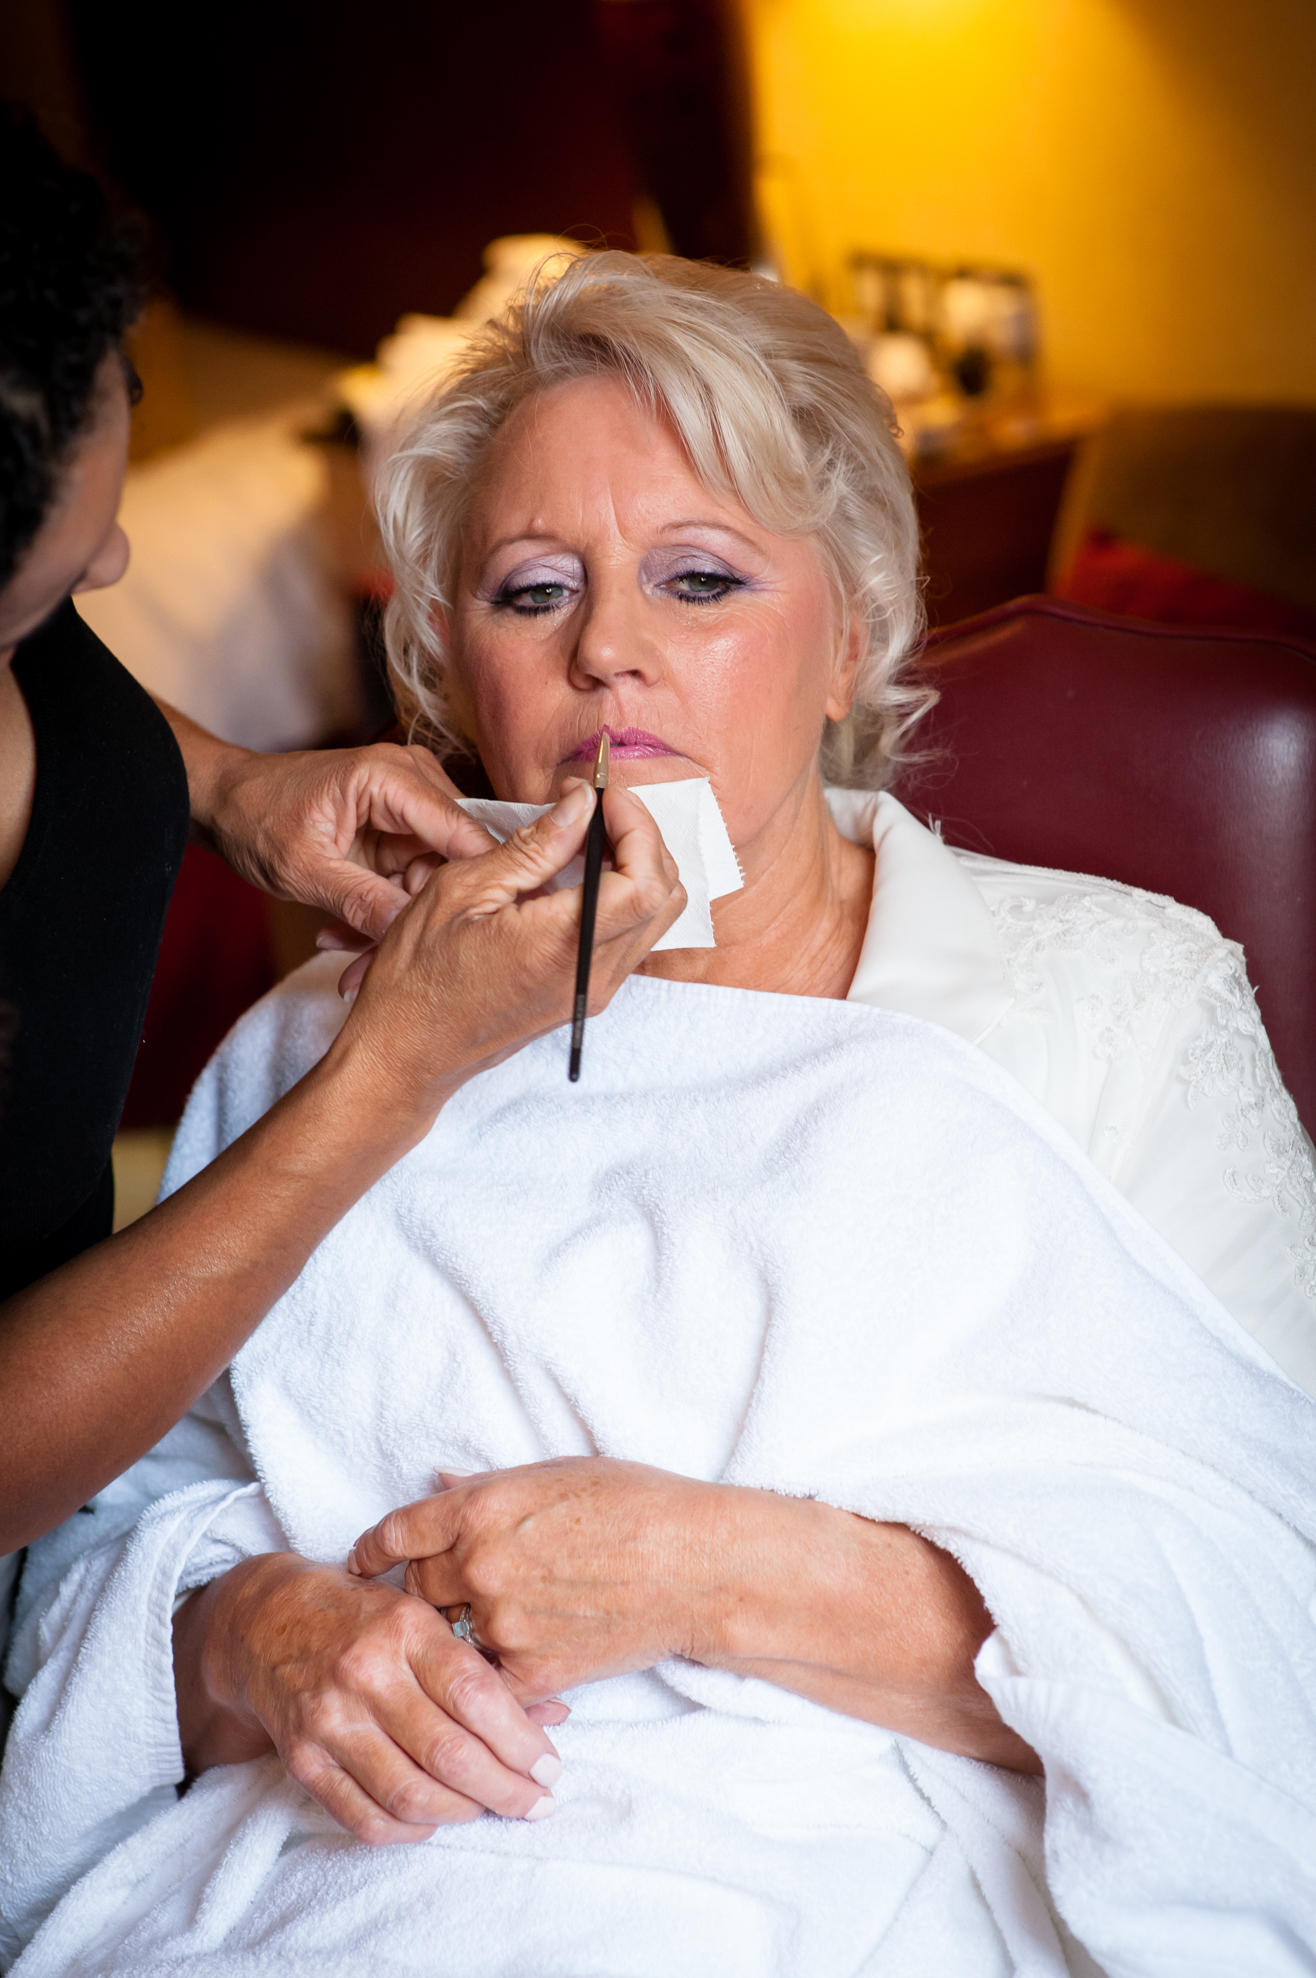 smoky makeup for a mature bride and bridal hairstyles for brides with short hair, by wedding makeup artist and bridal hair stylist Pam Wrigley in London